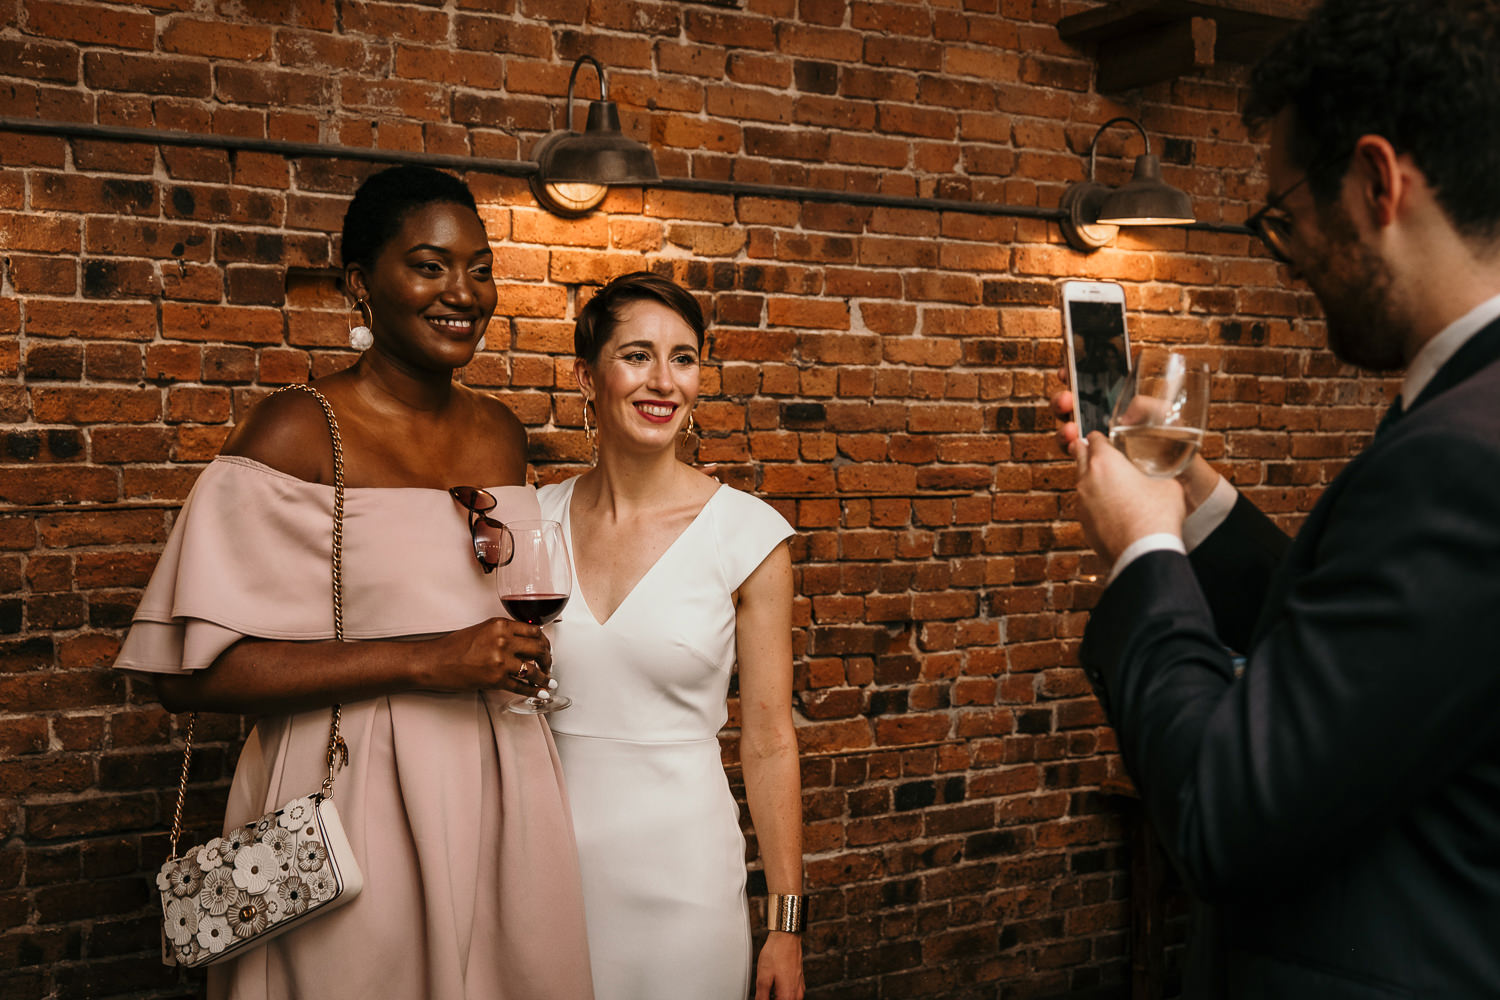 bride and friend posing in front of brick wall other friend taking a cell phone picture